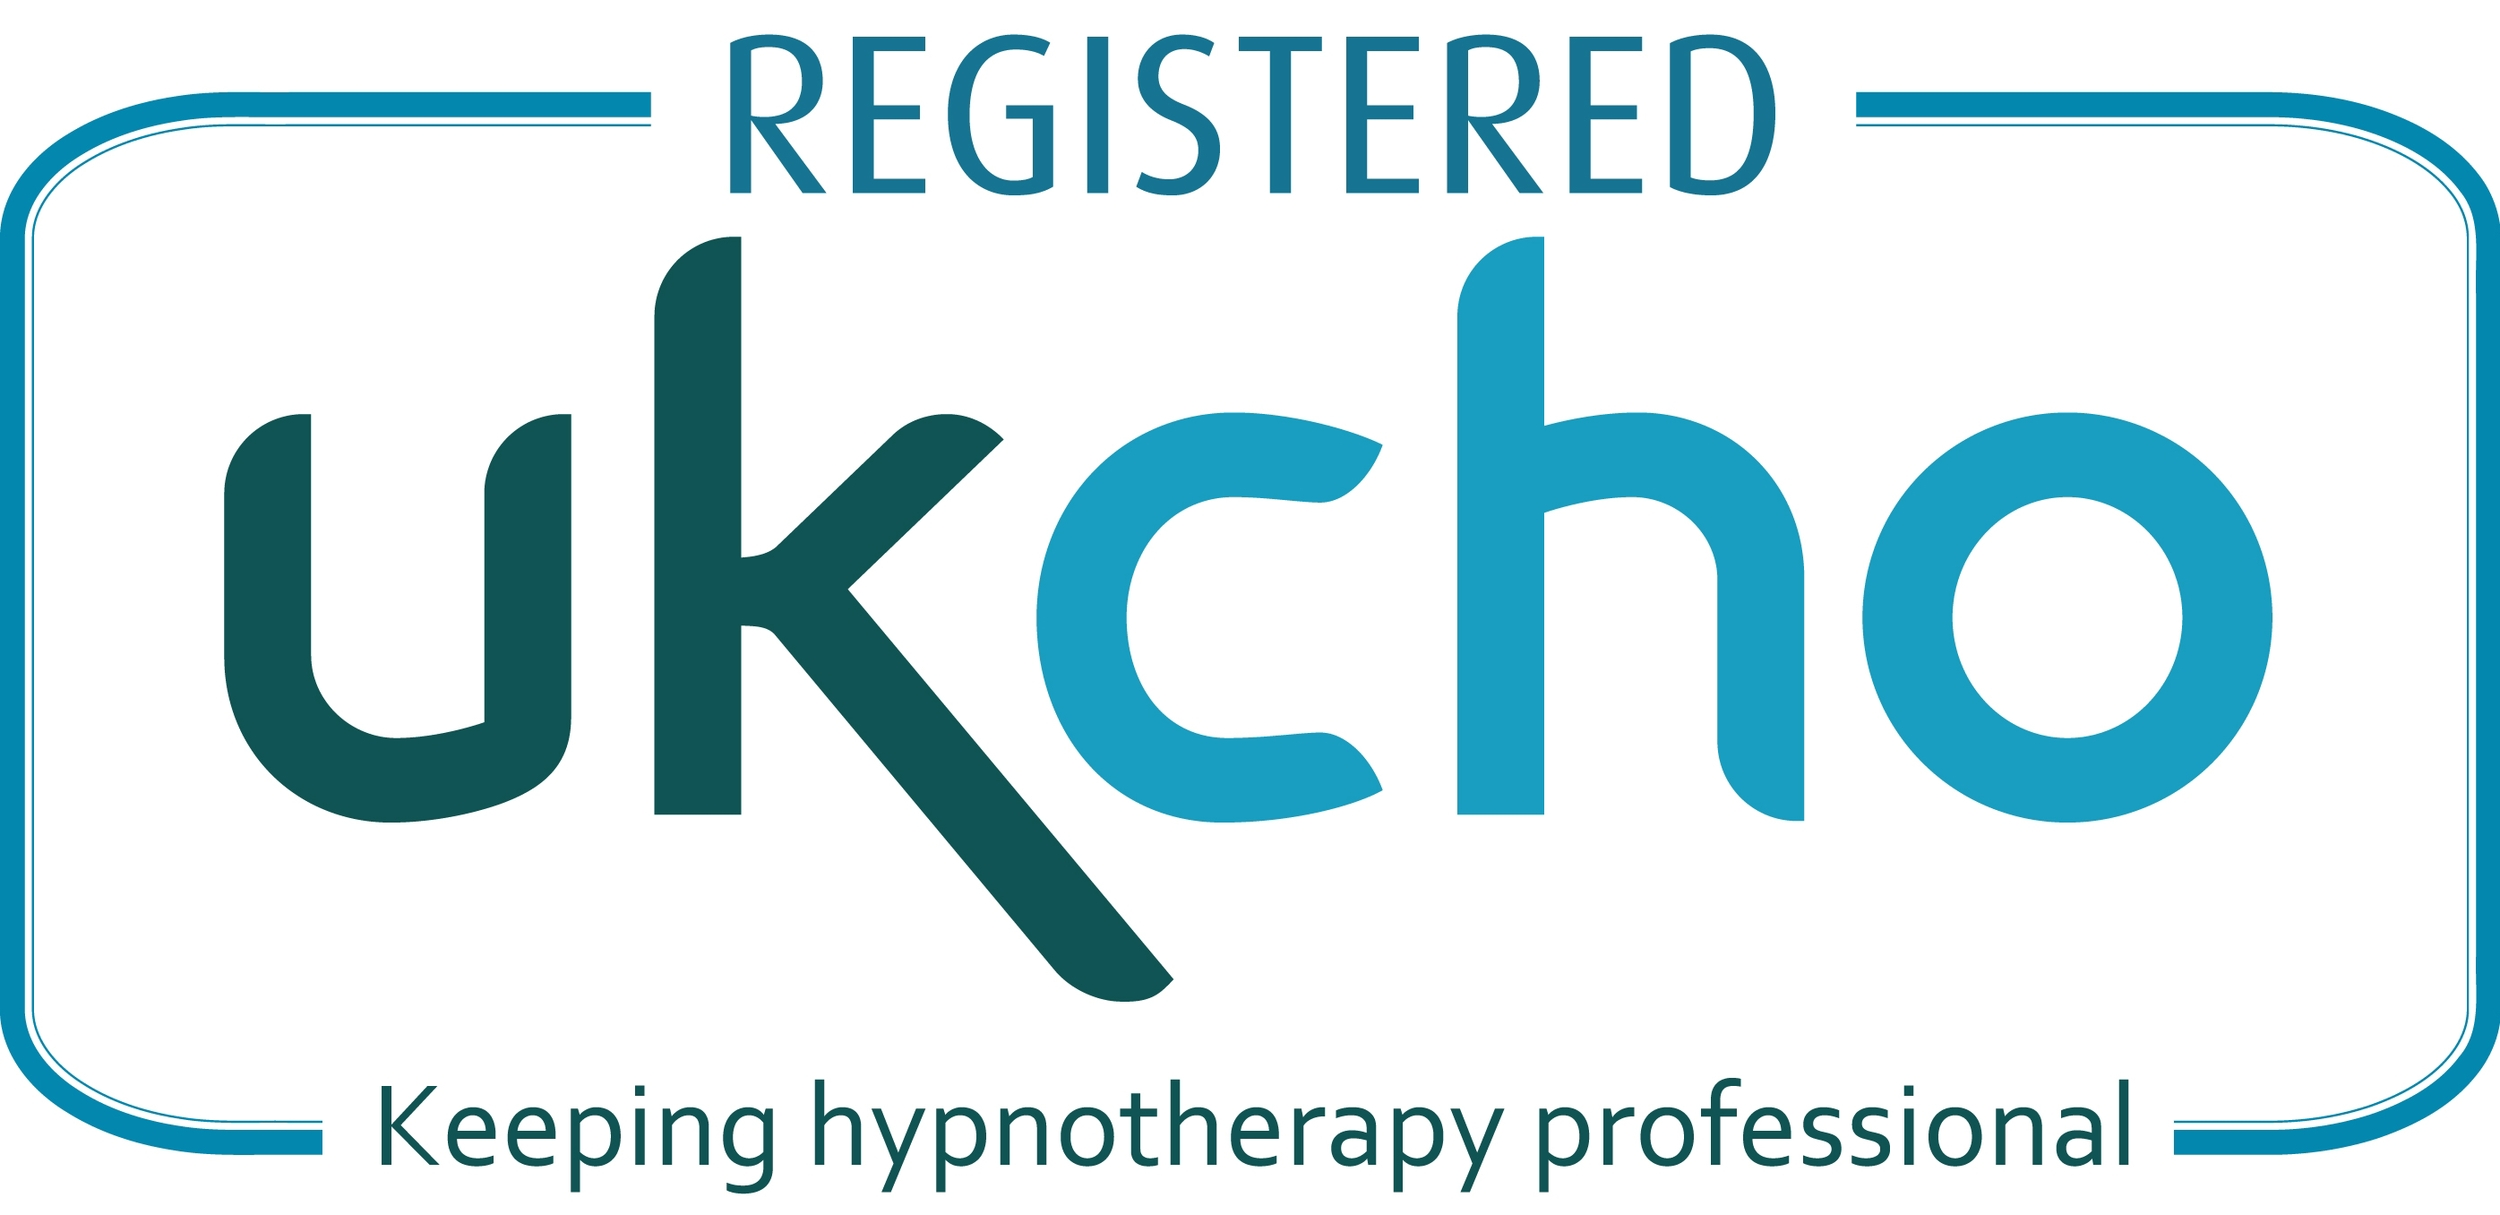 The UK Confederation of Hypnotherapy Organisations which means that my qualification meets national occupational standards and I am bound by a professional code of conduct, ethics and practice.